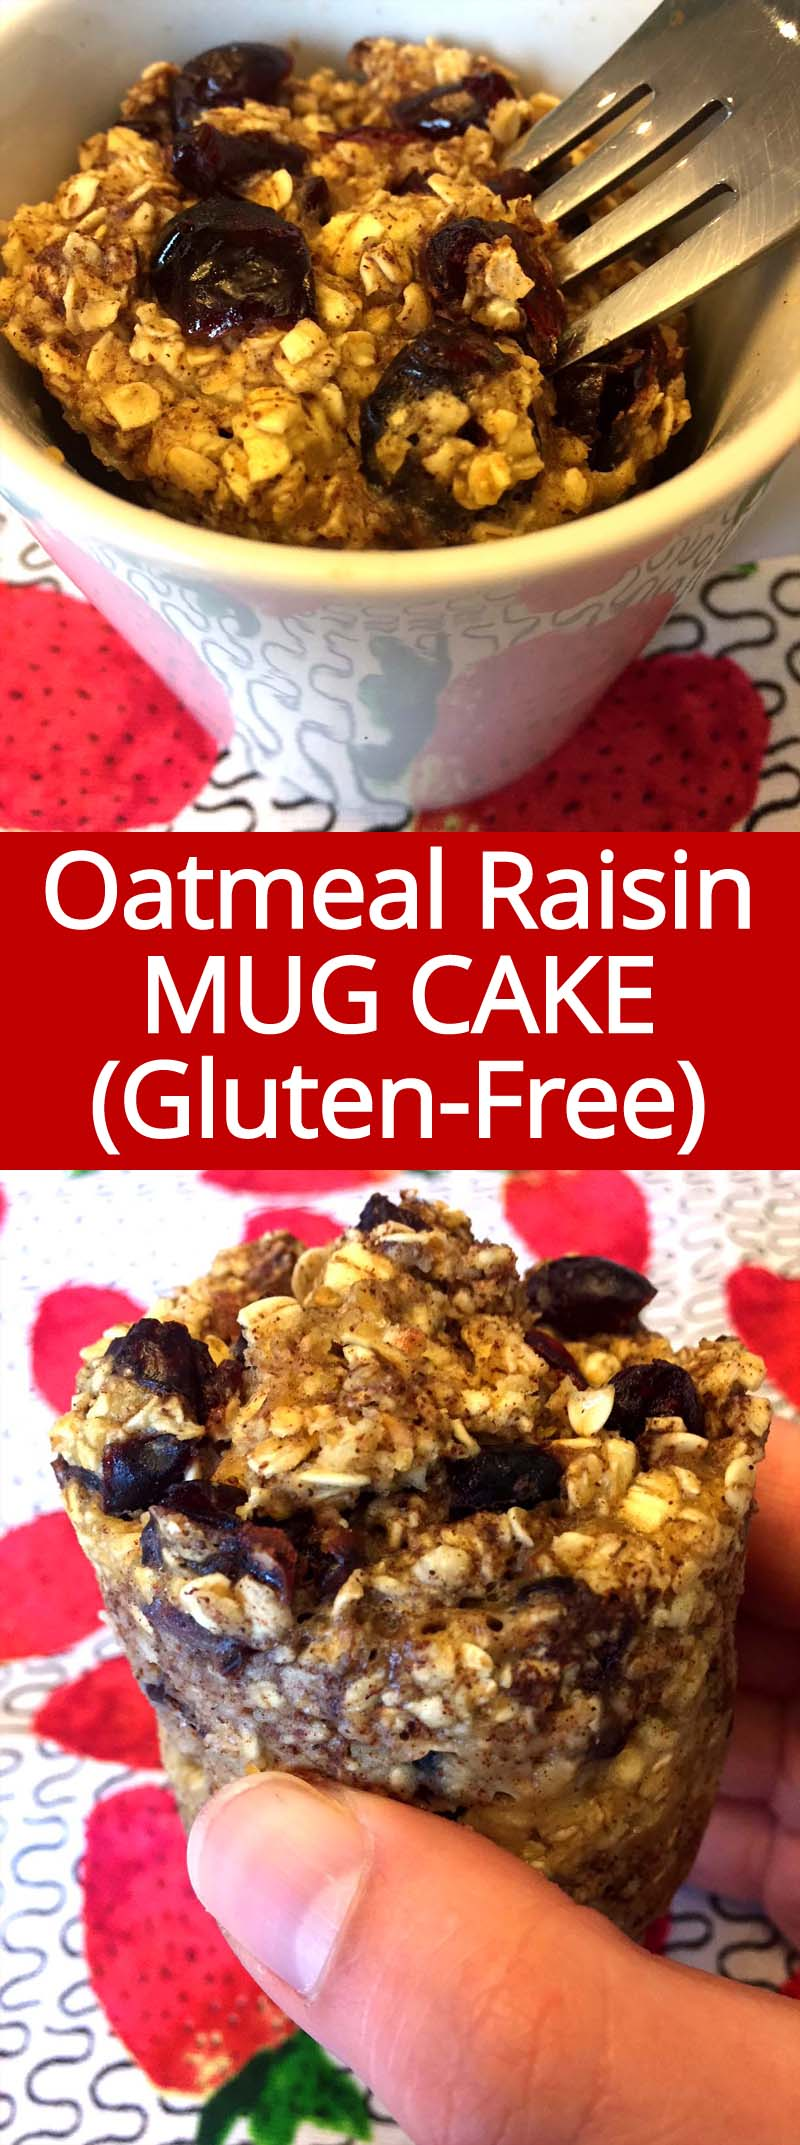 I love this gluten-free oatmeal raisin microwave mug cake! So easy to make, healthy and delicious! It's like cinnamon oatmeal raisin baked oatmeal in a mug!